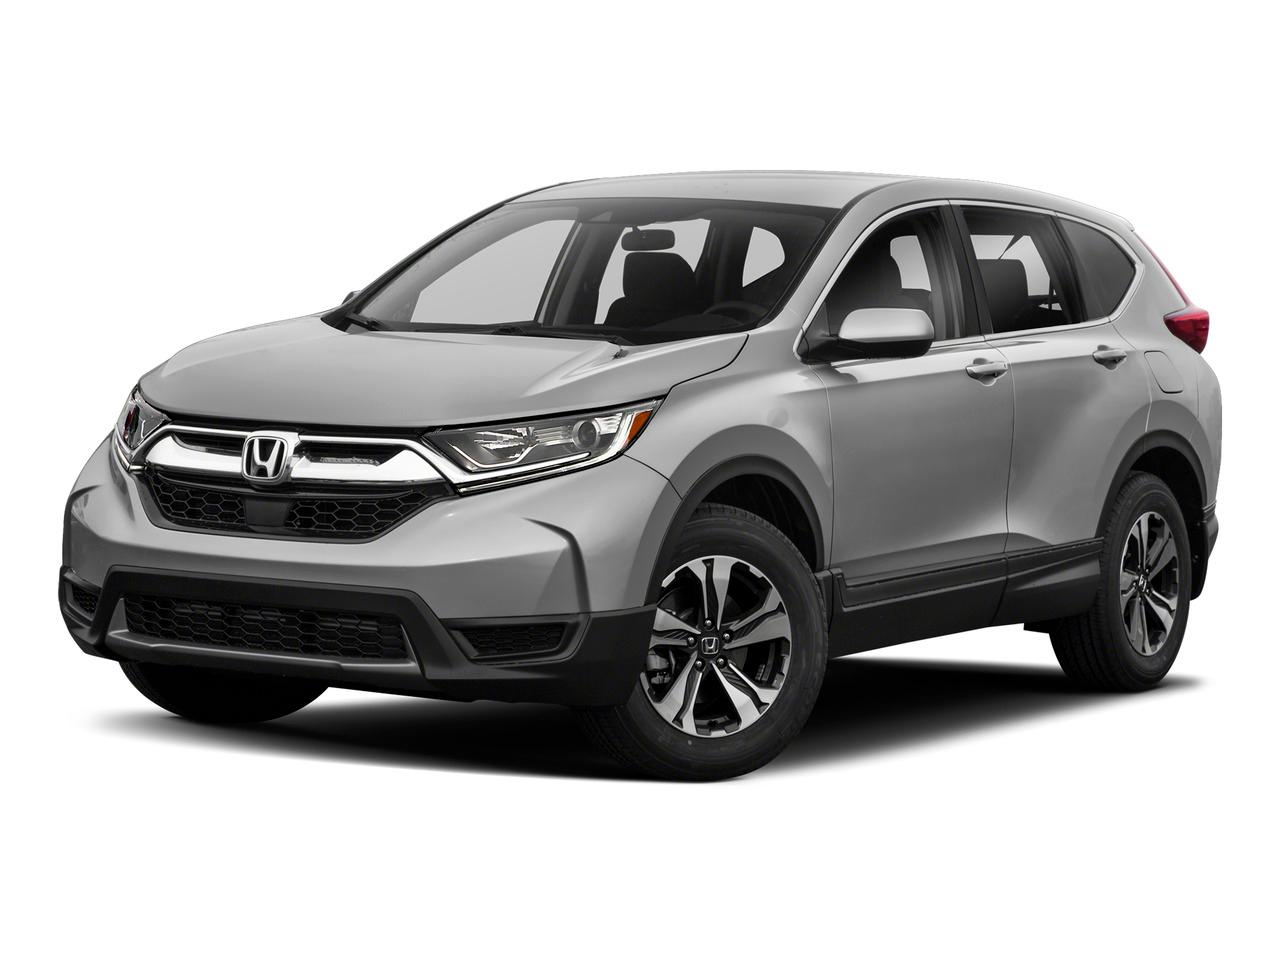 2018 Honda CR-V Vehicle Photo in Owensboro, KY 42302